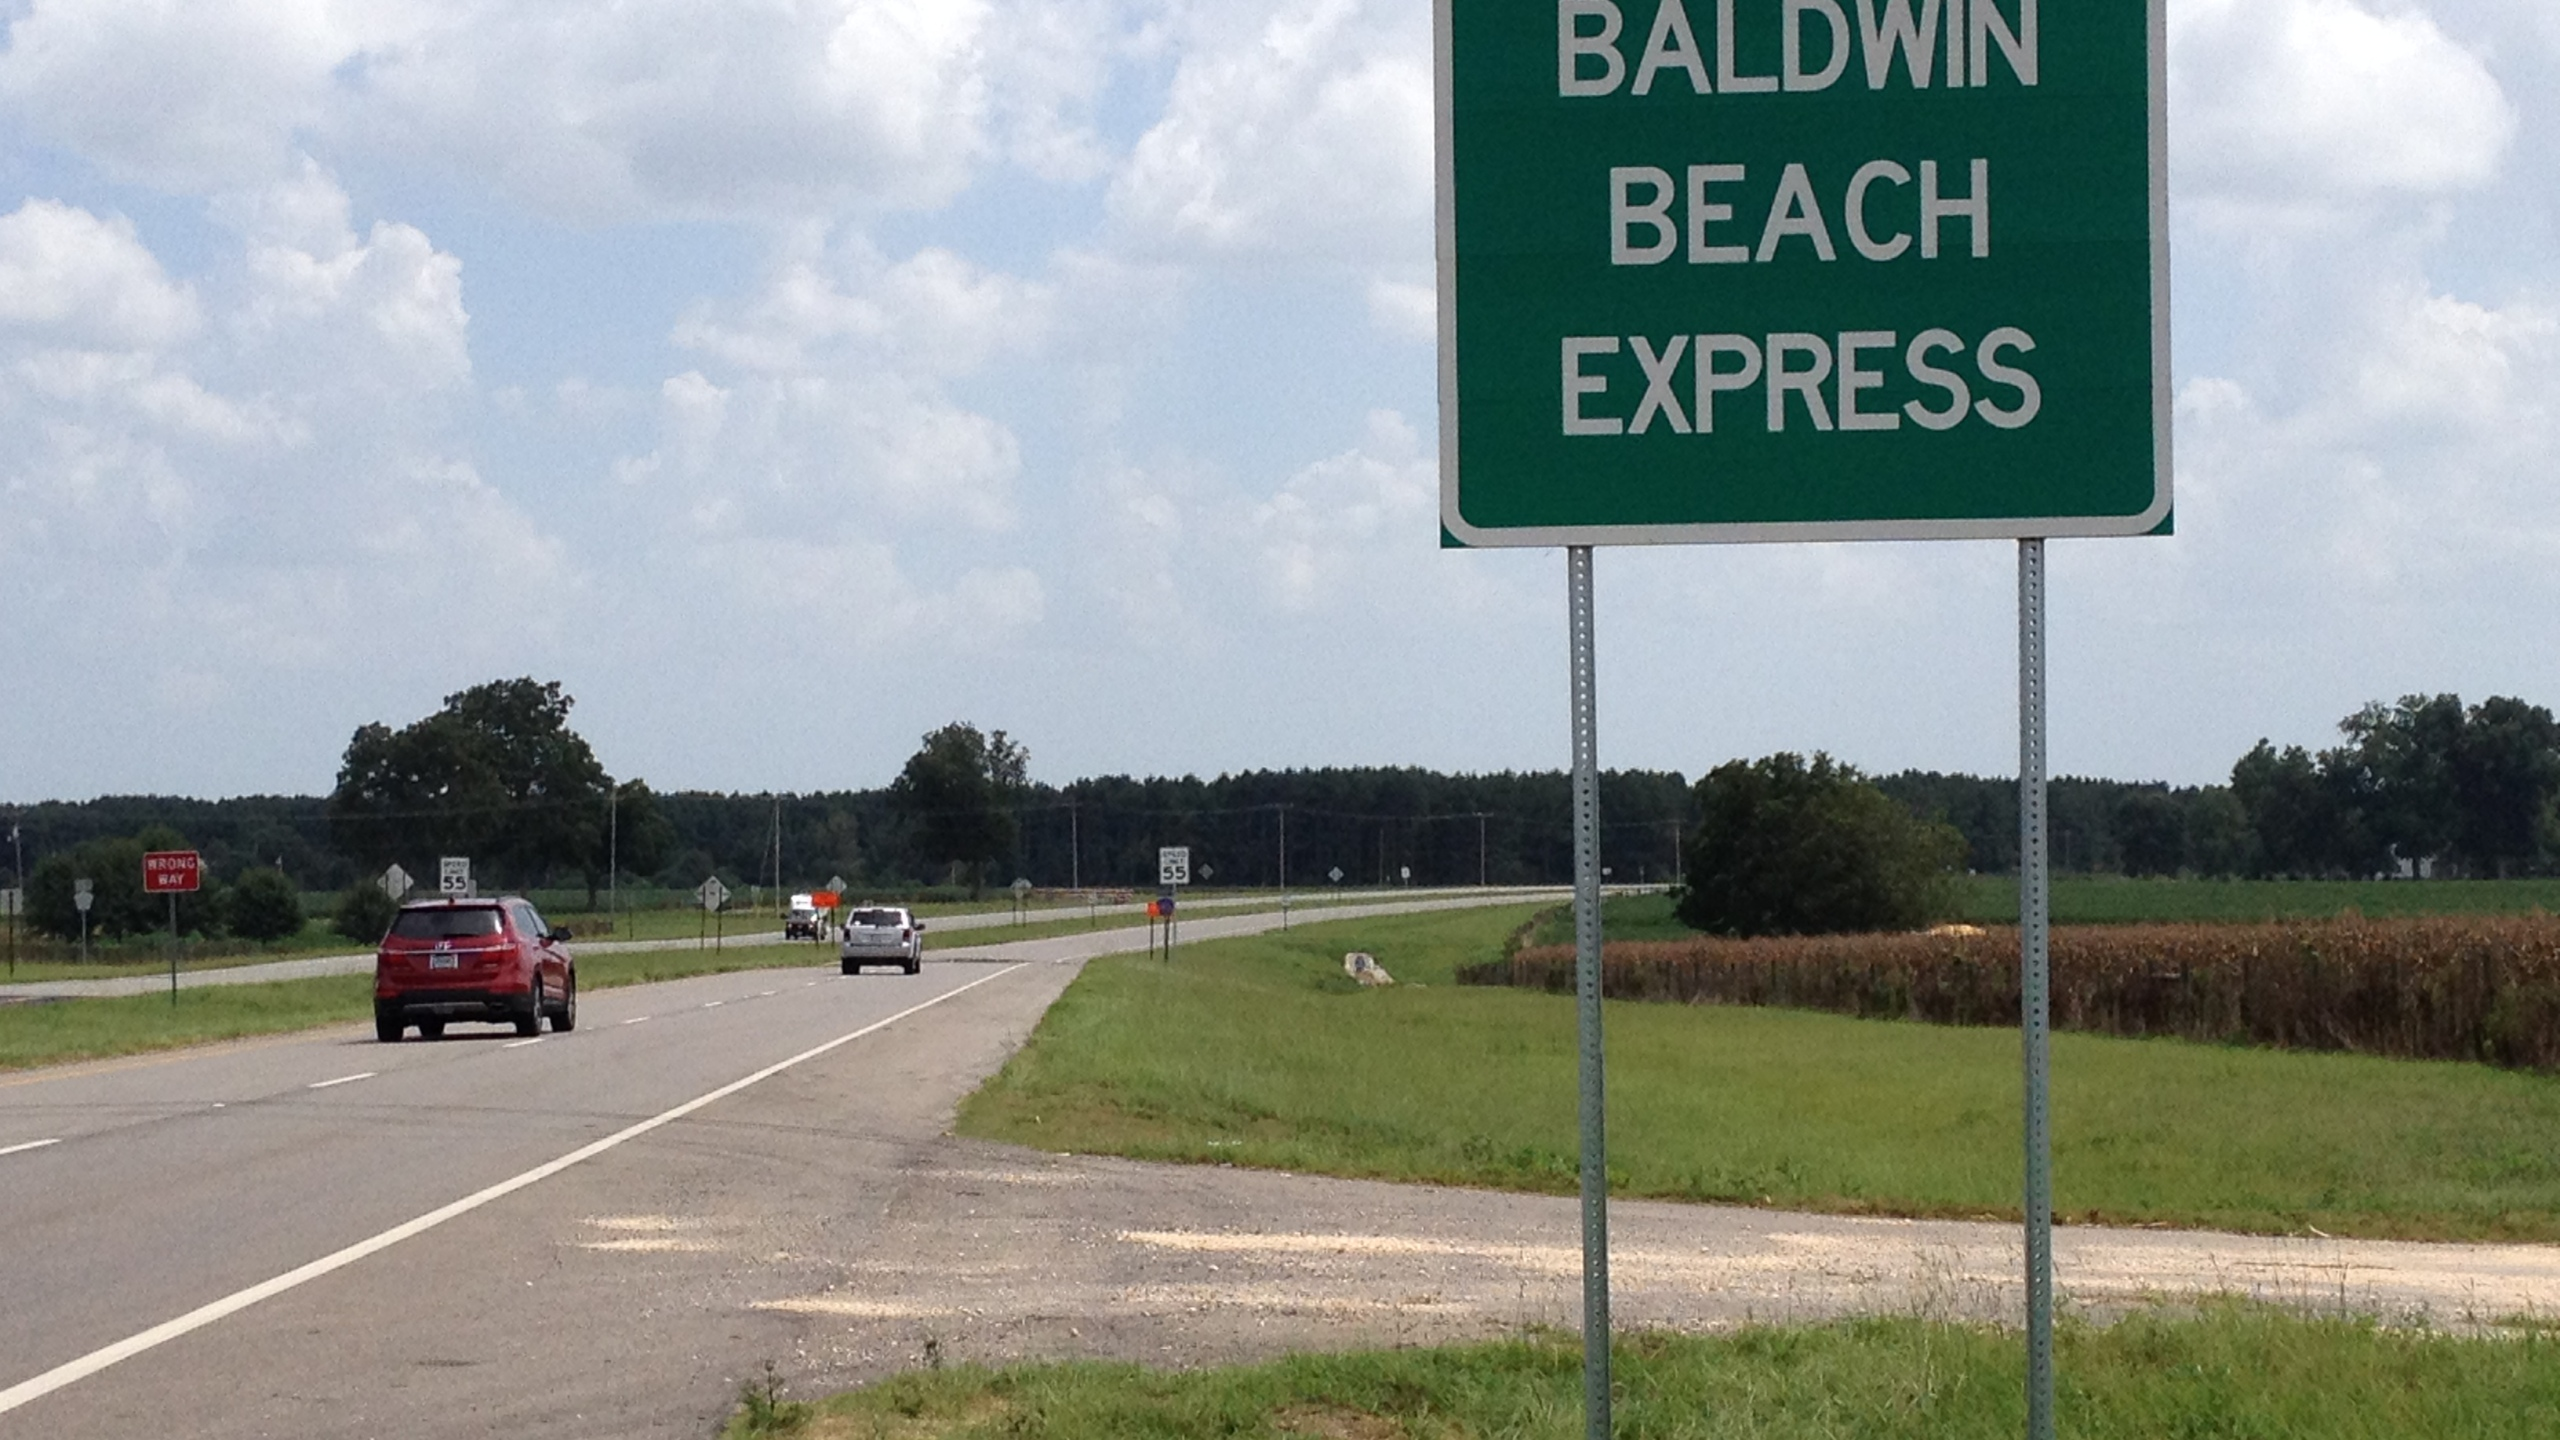 Baldwin Beach Express_16208